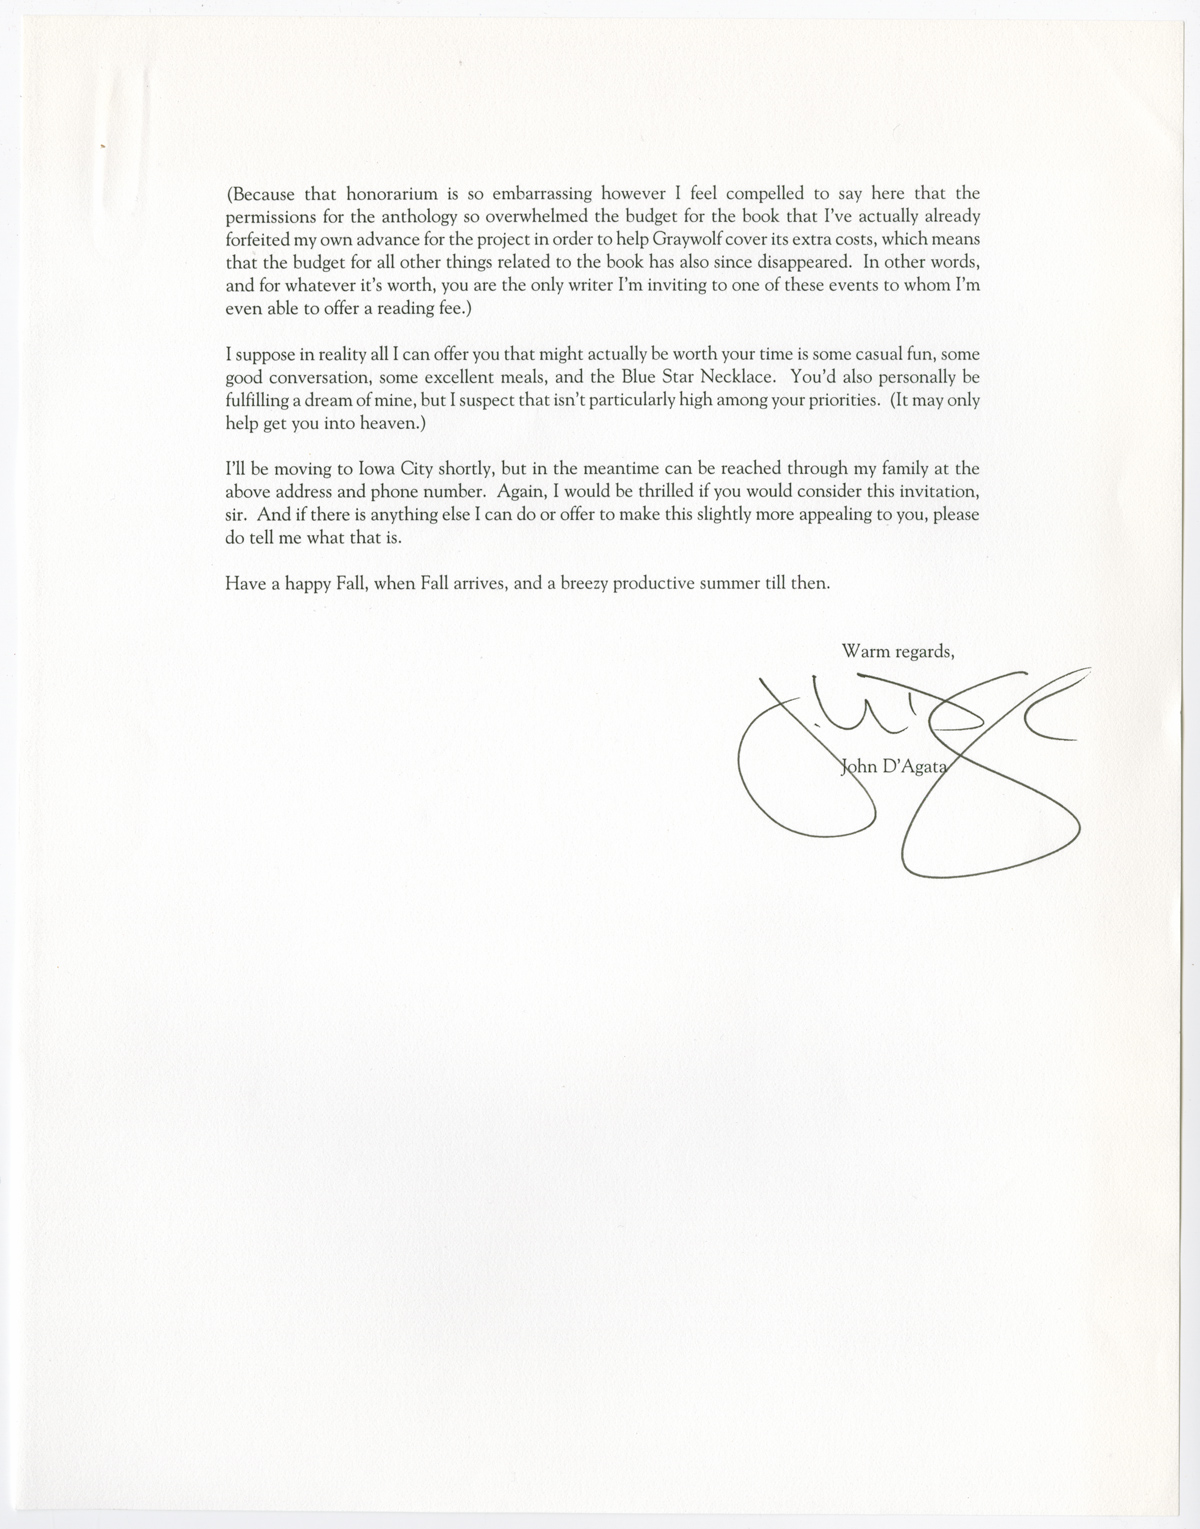 Letter from John D'Agata to Davenport. August 17, 2003.